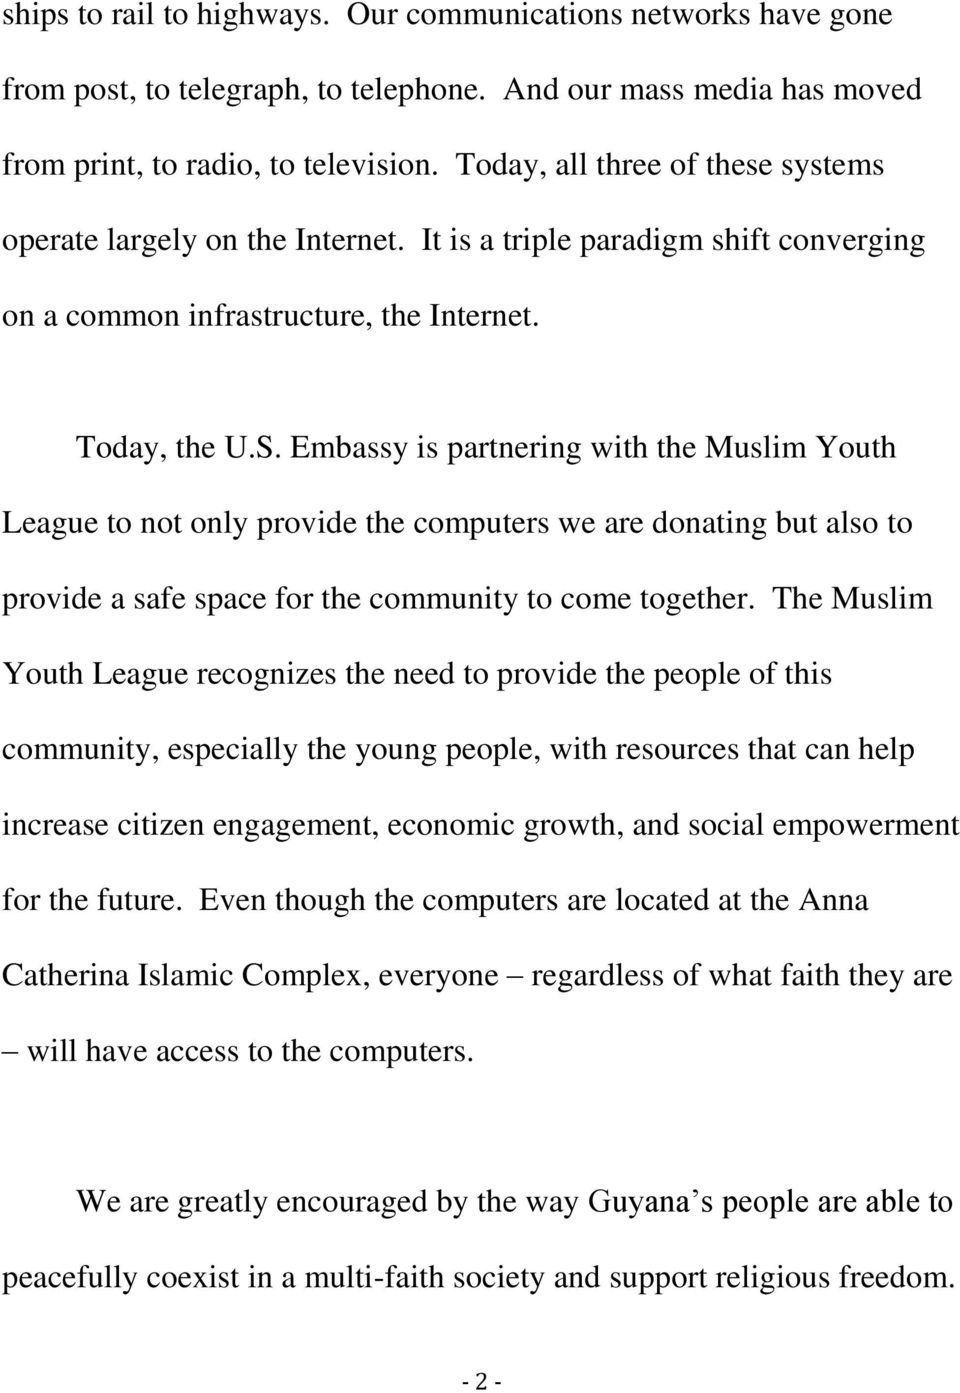 Embassy is partnering with the Muslim Youth League to not only provide the computers we are donating but also to provide a safe space for the community to come together.